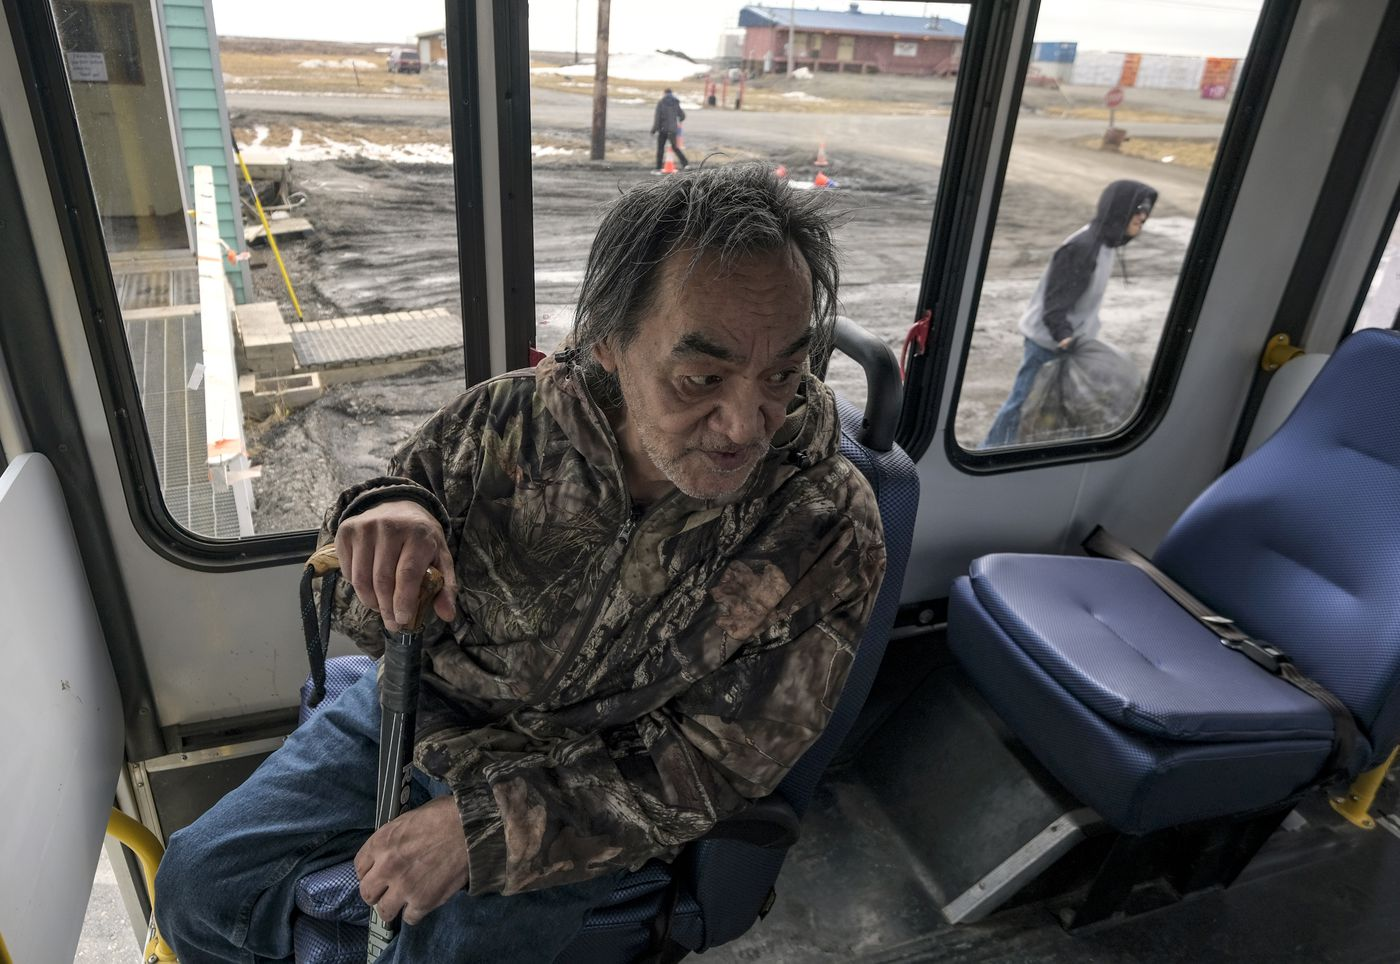 Edward Nukapigak, Martha Itta's uncle, on a seniors' shuttle. He says oil dividends and payments to the community are essential. (Washington Post photo by Bonnie Jo Mount)